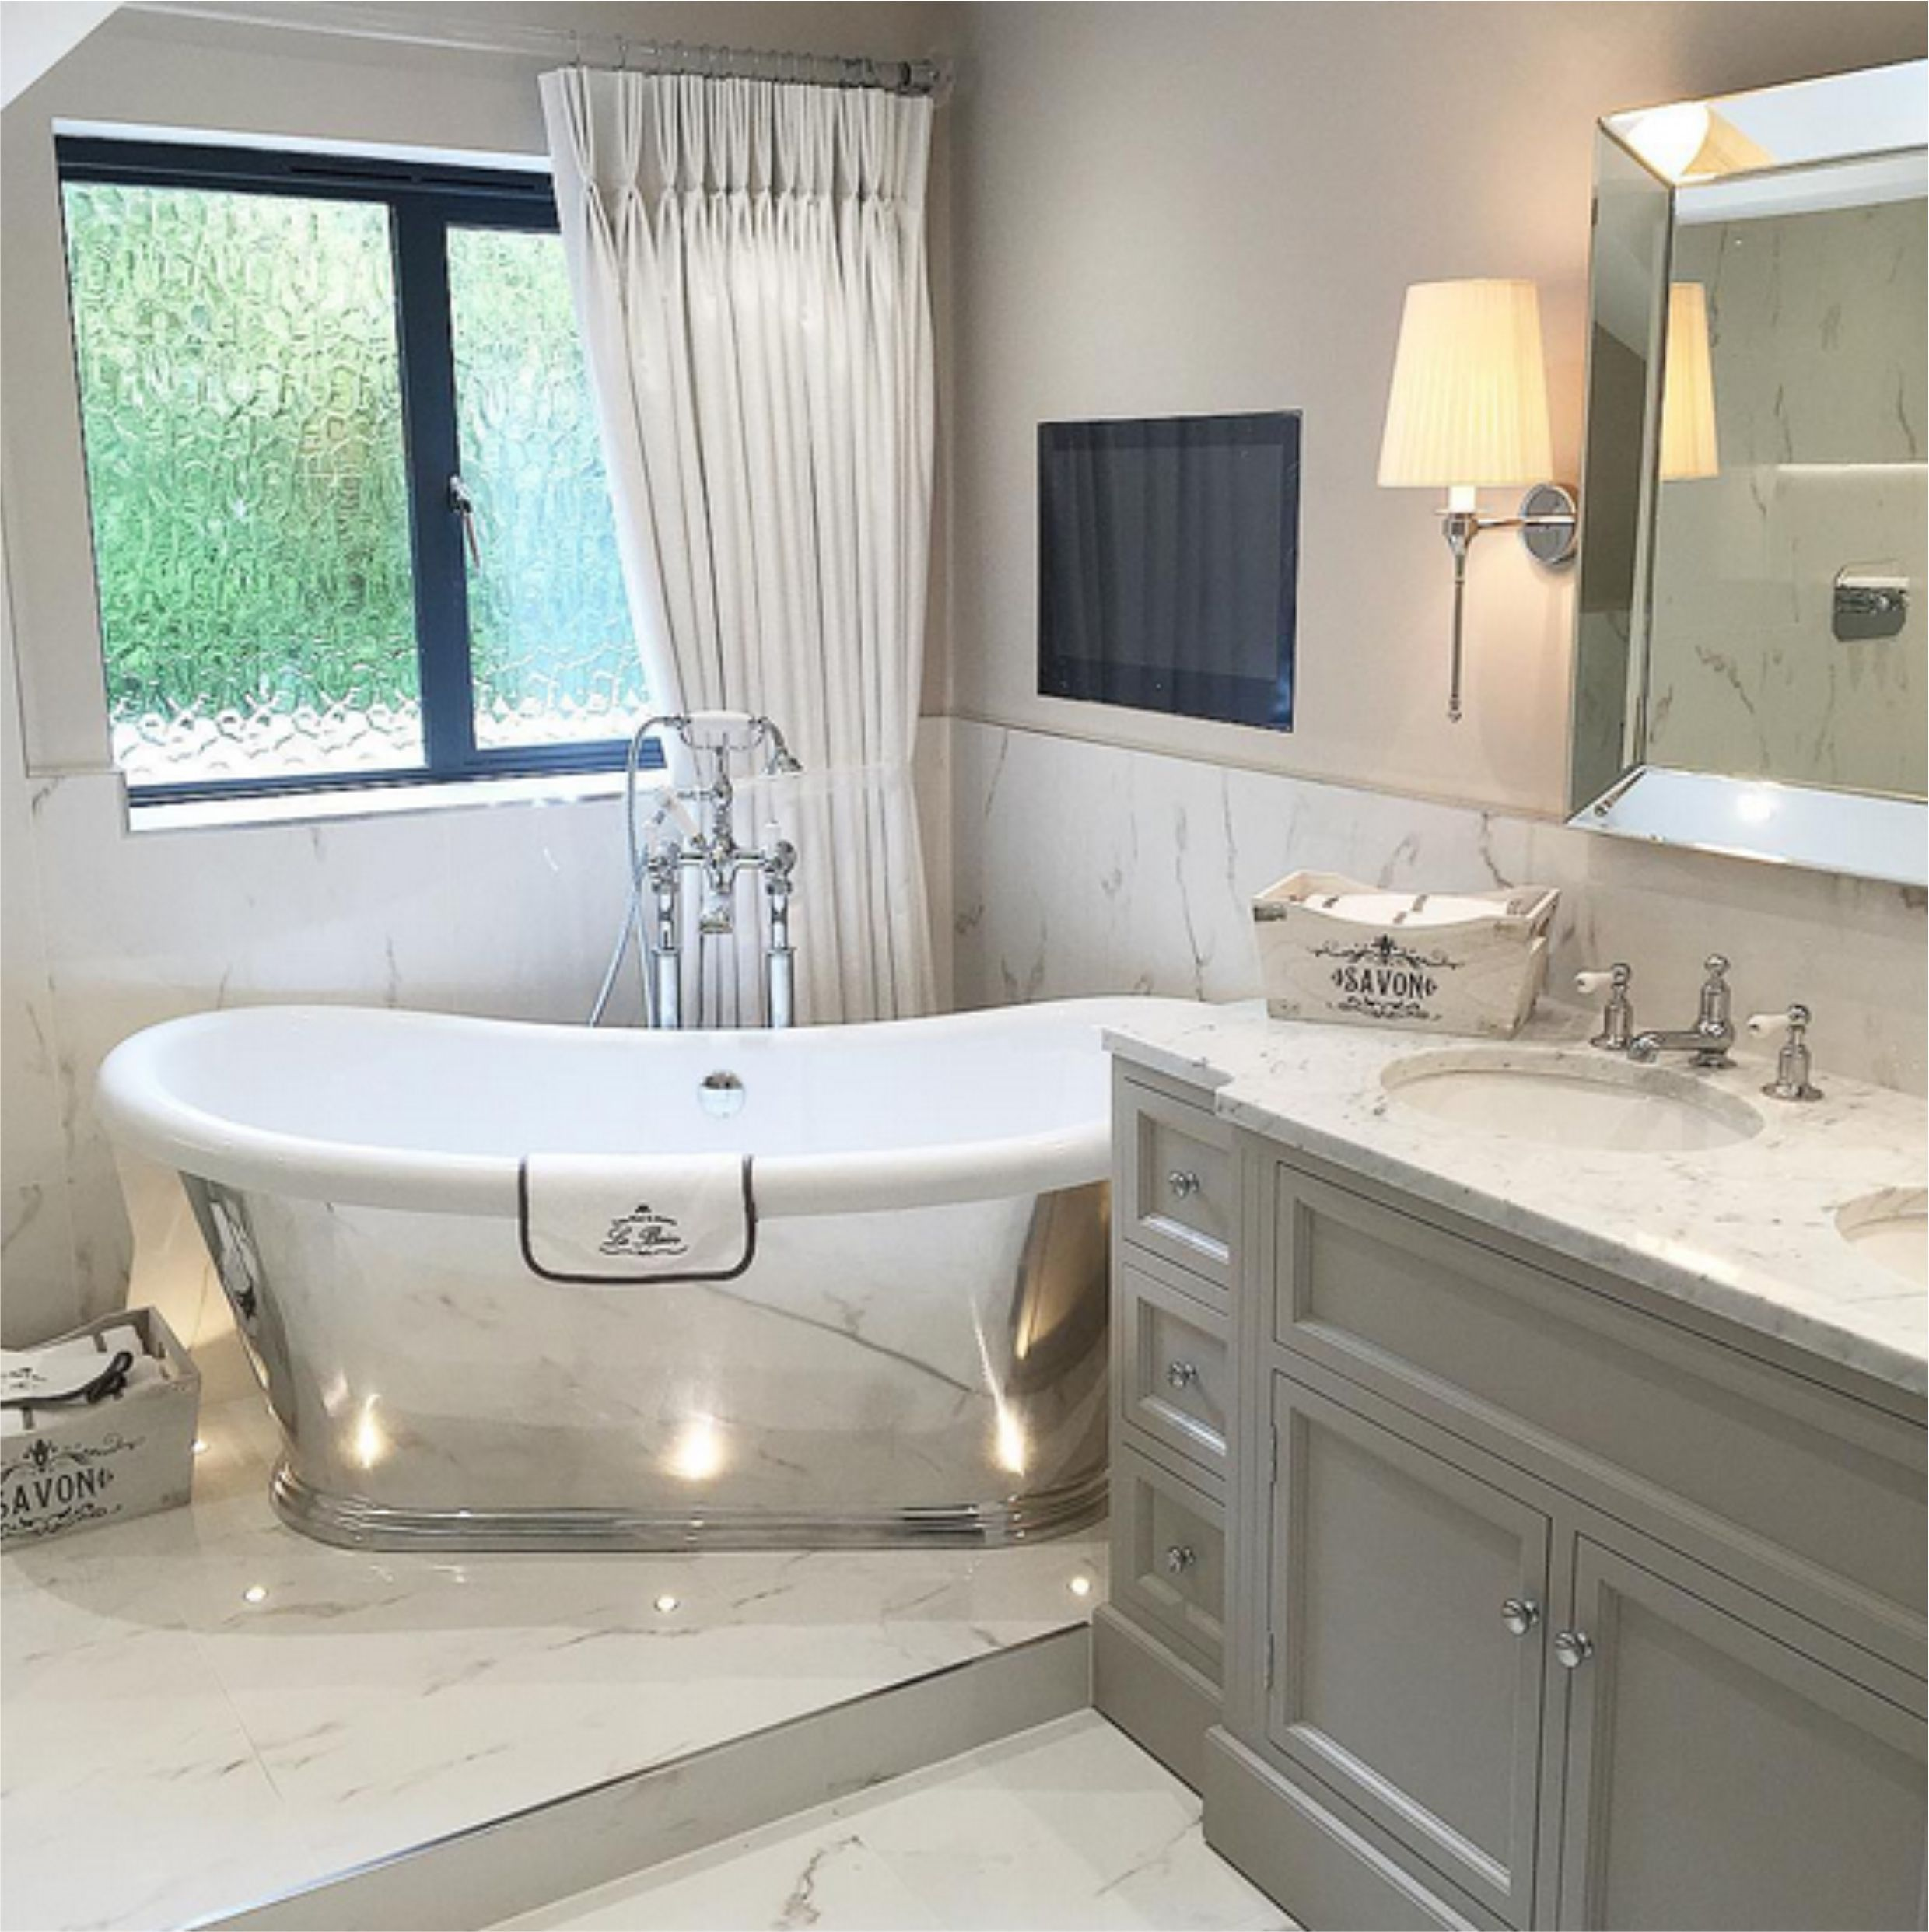 The polished boat bath by bc designs project by charlotte conway designs designer bathrooms Small yacht bathroom design